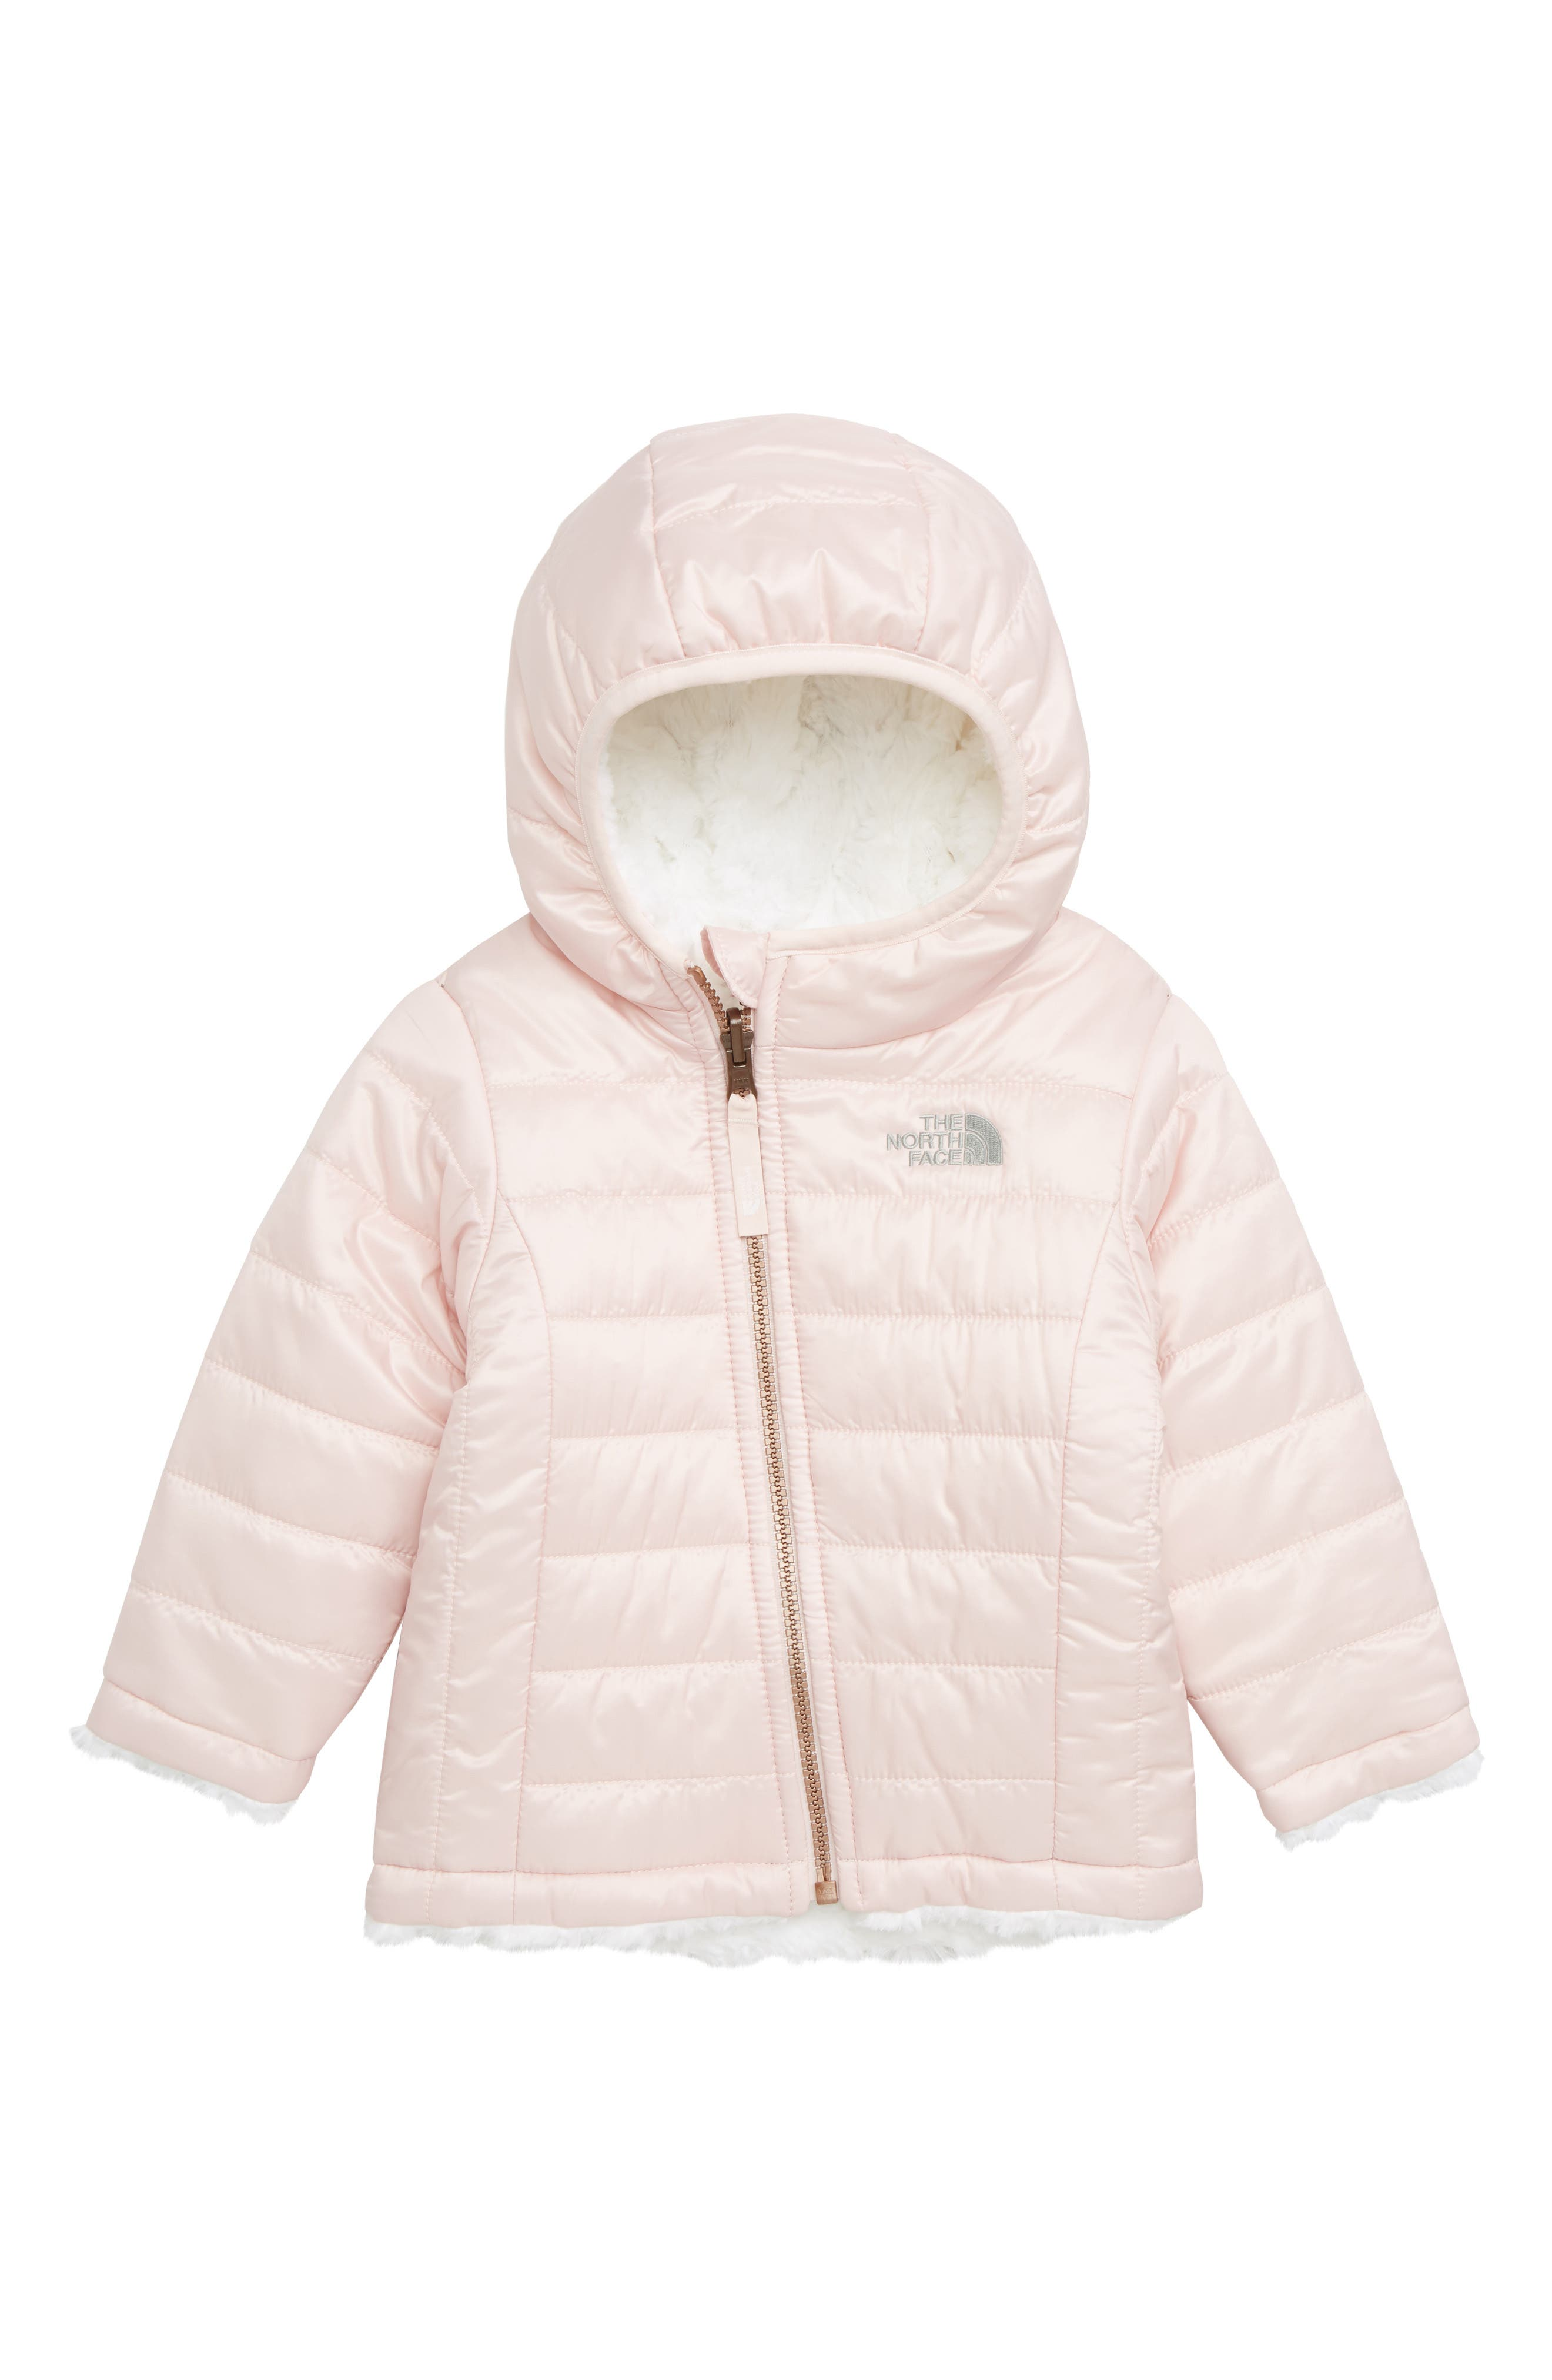 THE NORTH FACE, Mossbud Swirl Reversible Water Repellent Jacket, Main thumbnail 1, color, PURDY PINK